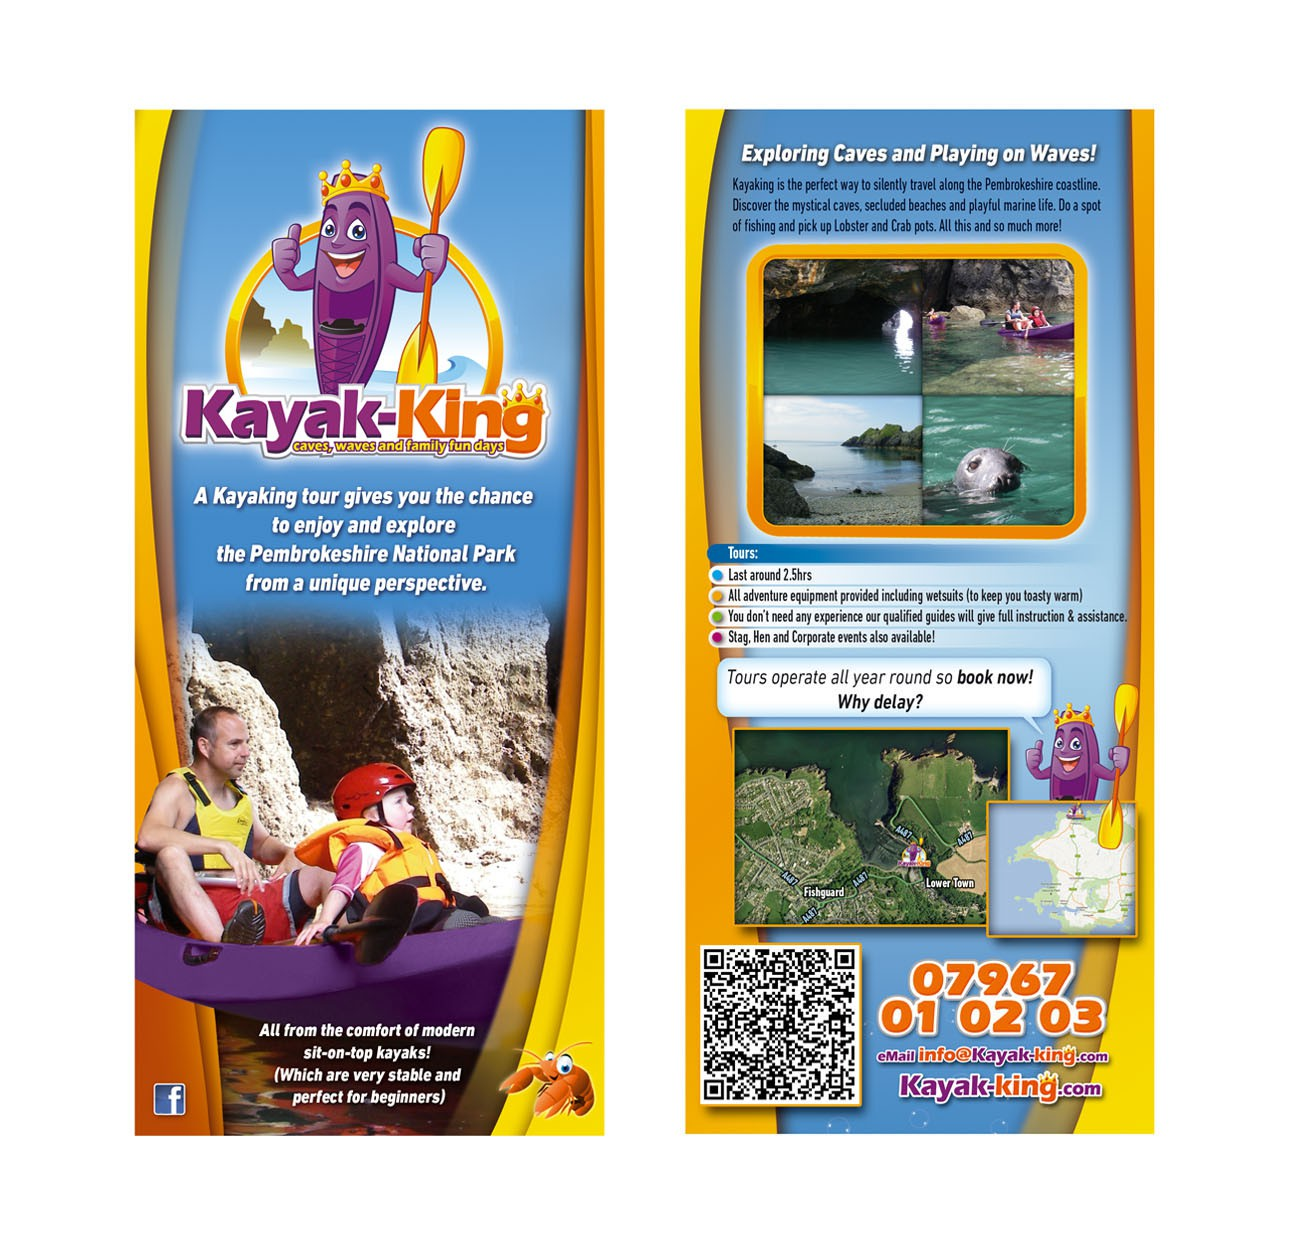 DL two-sided flyer for Kayak-King! (Take a look for a fun guaranteed project!)